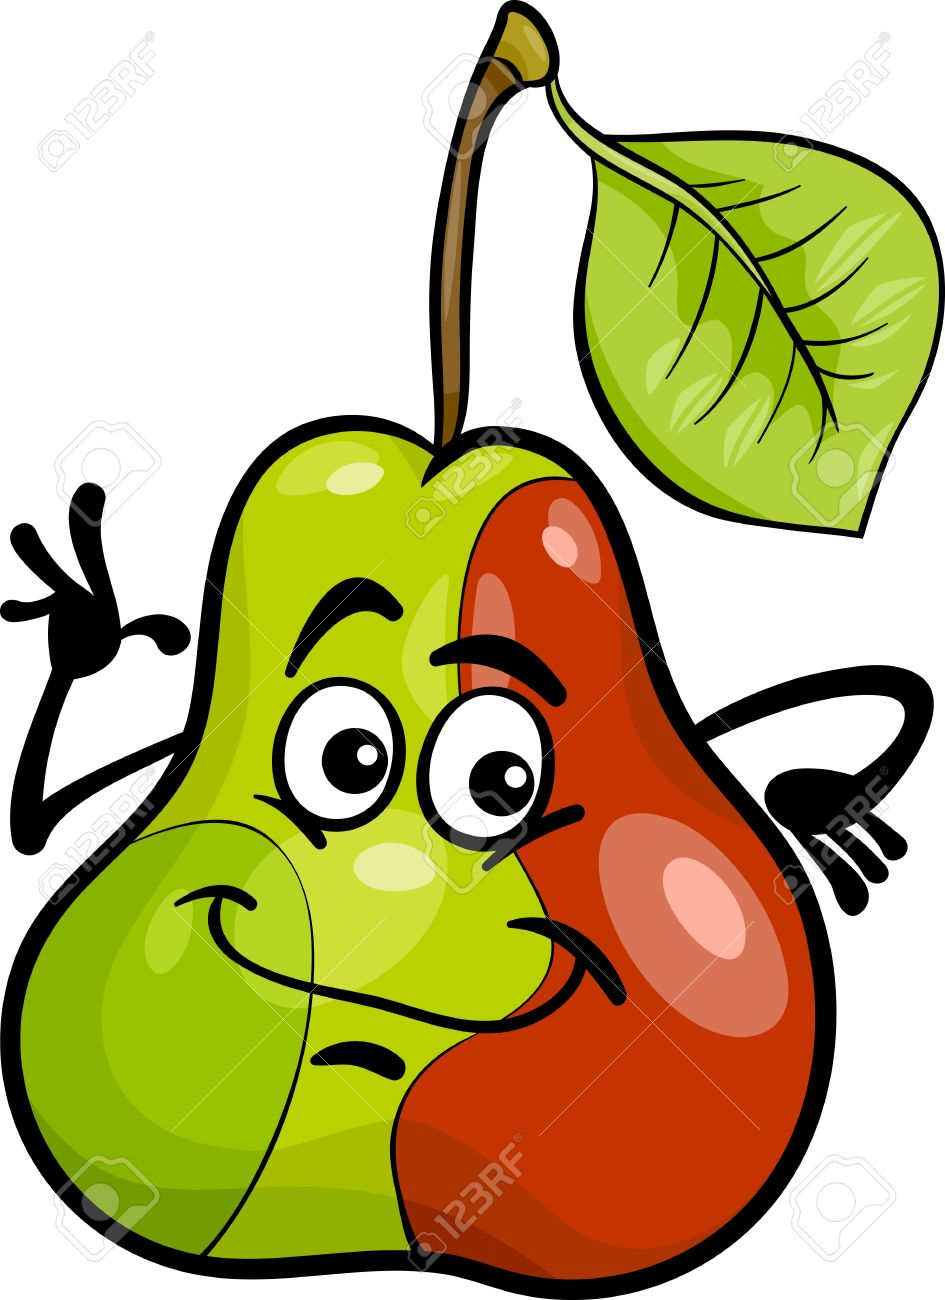 Cartoon Illustration Of Funny Pear Fruit Food Comic Character.